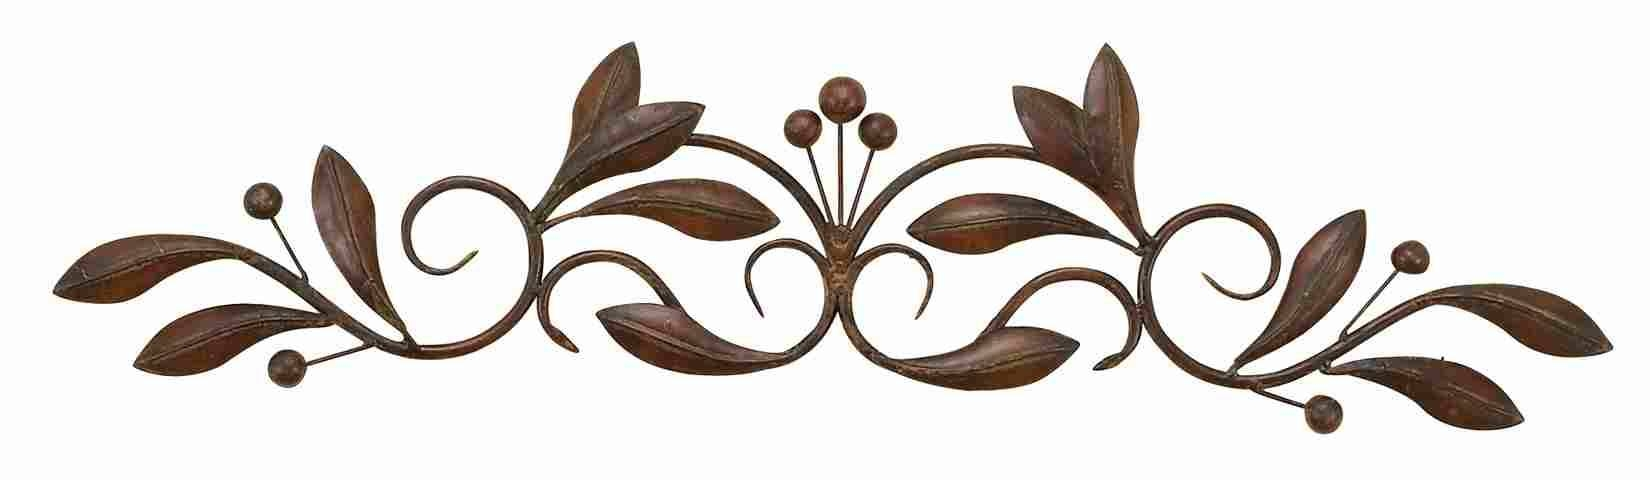 Small Buds & Vines – Metal Wall Art Scroll For Recent Scrolled Metal Wall Art (Gallery 1 of 20)